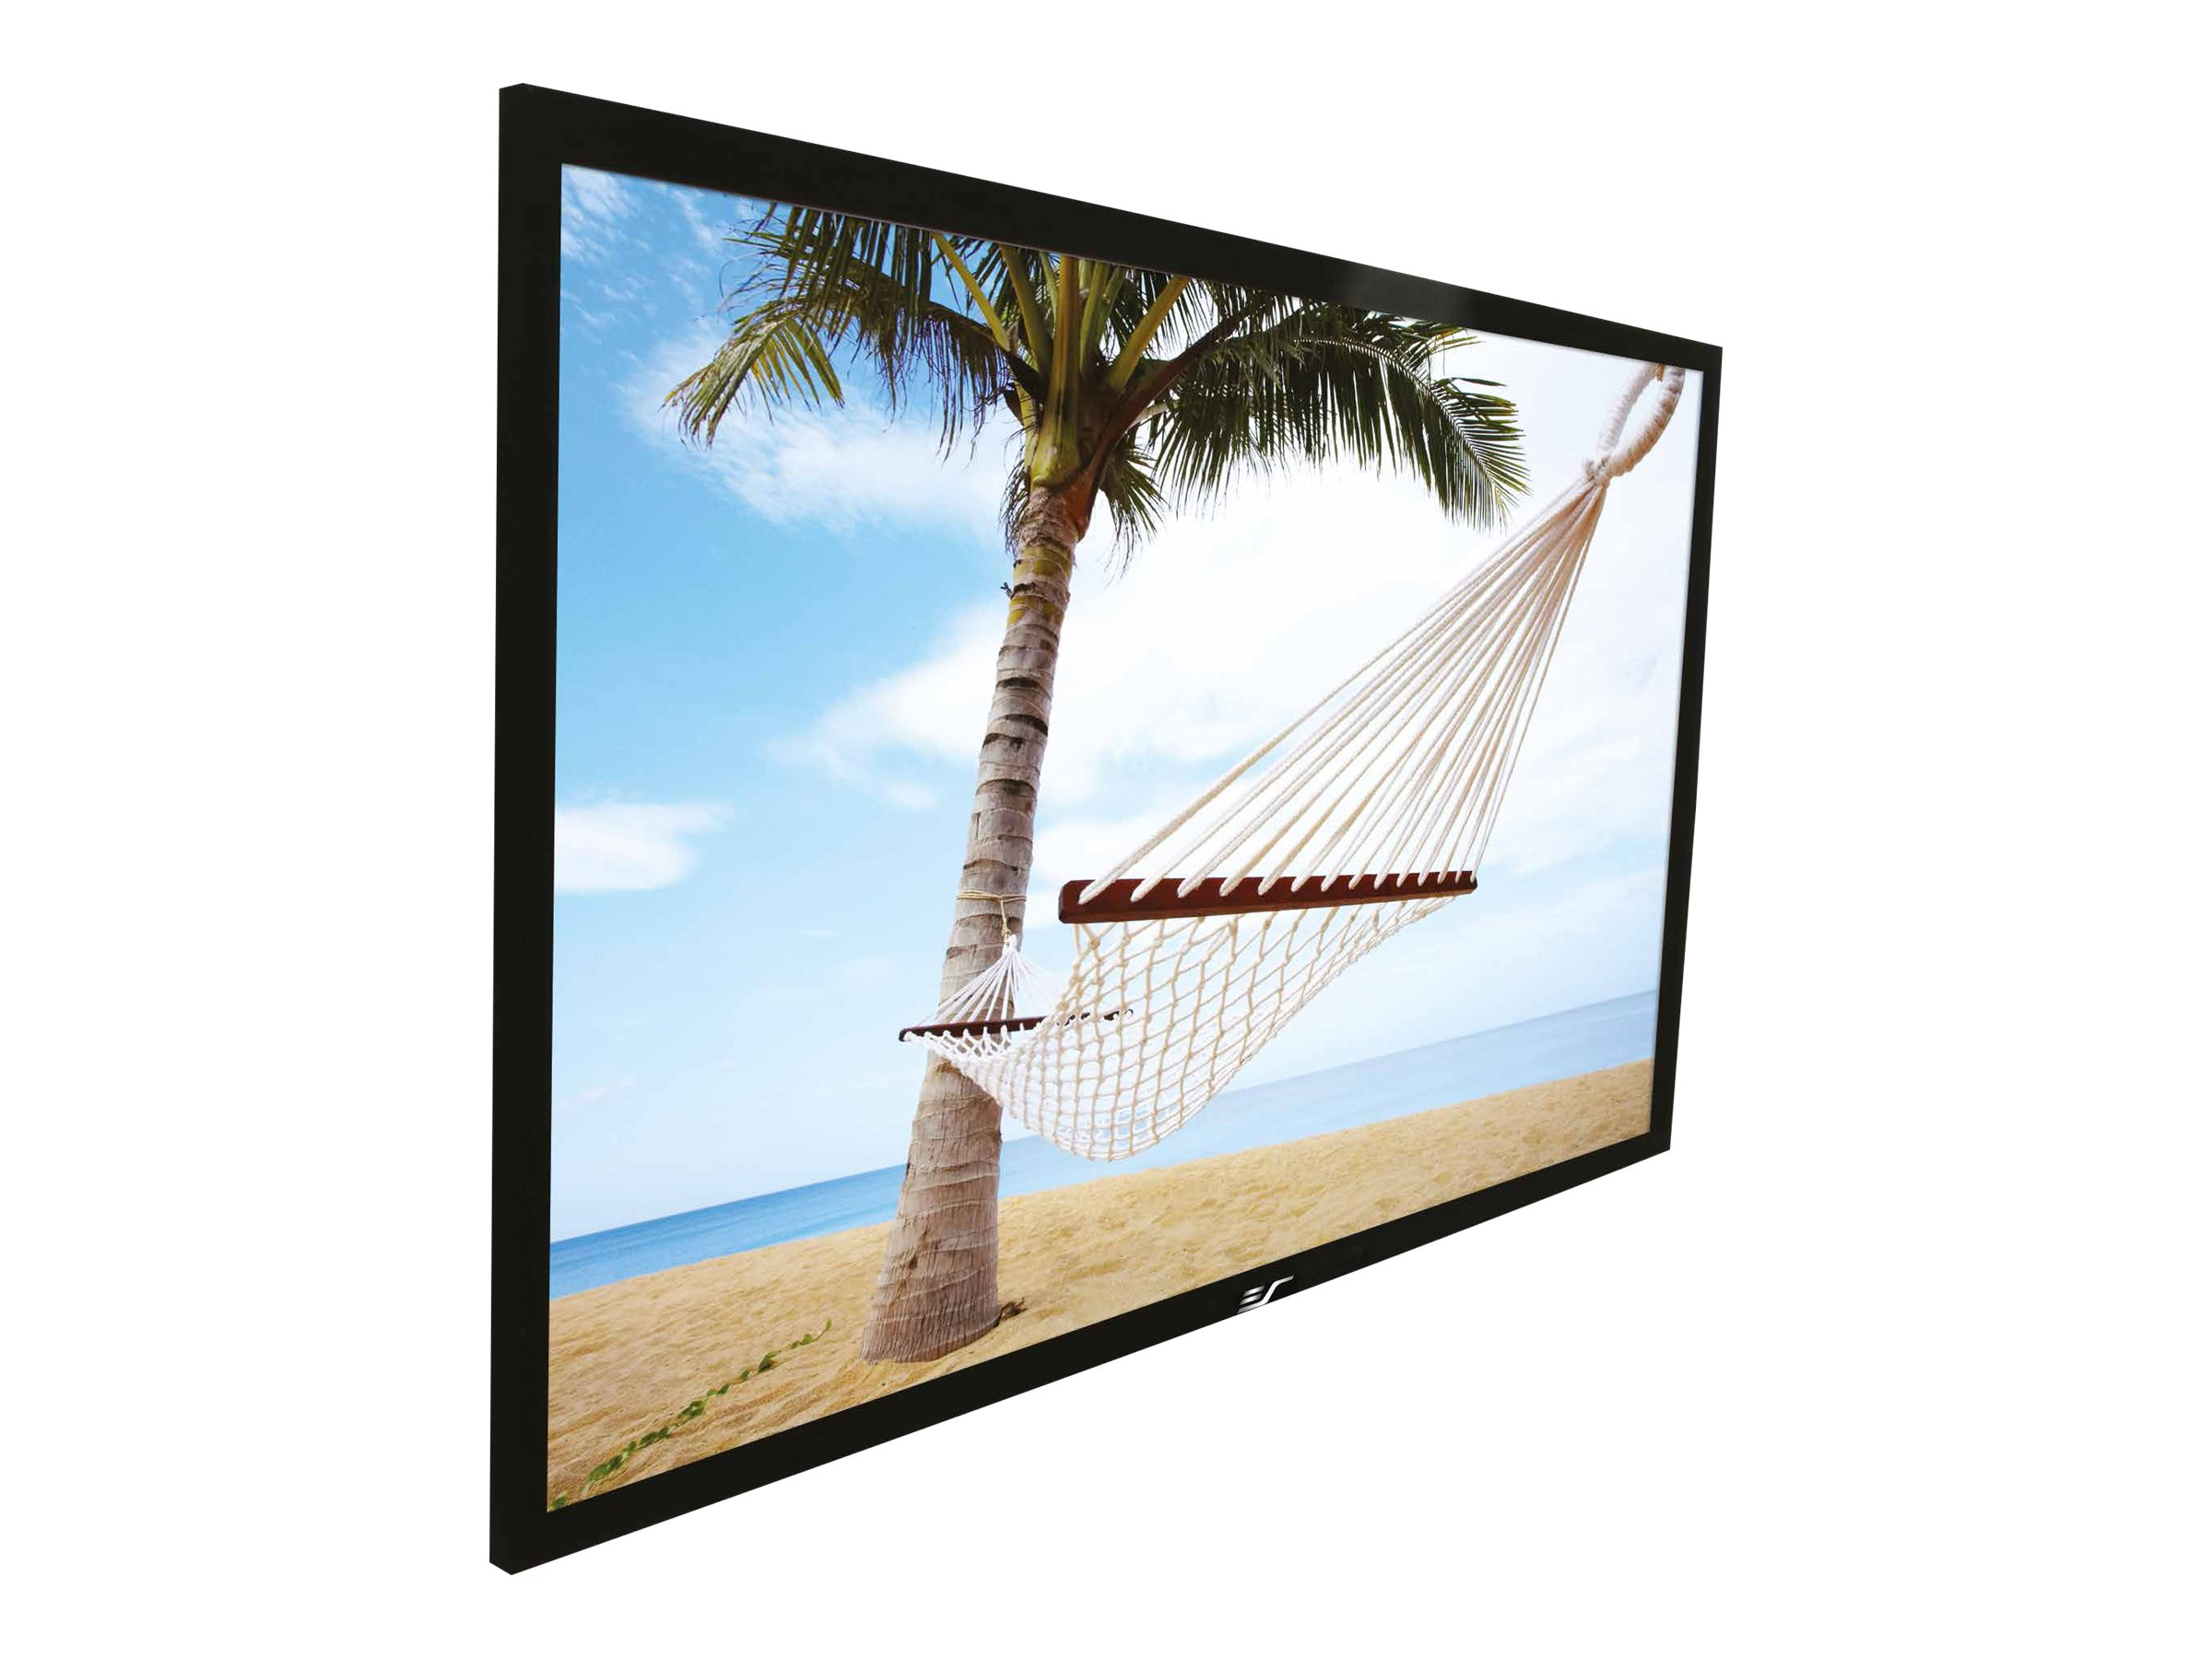 Elite ezFrame Projection Screen, CineGrey 5D, 16:9, 120, R120DHD5